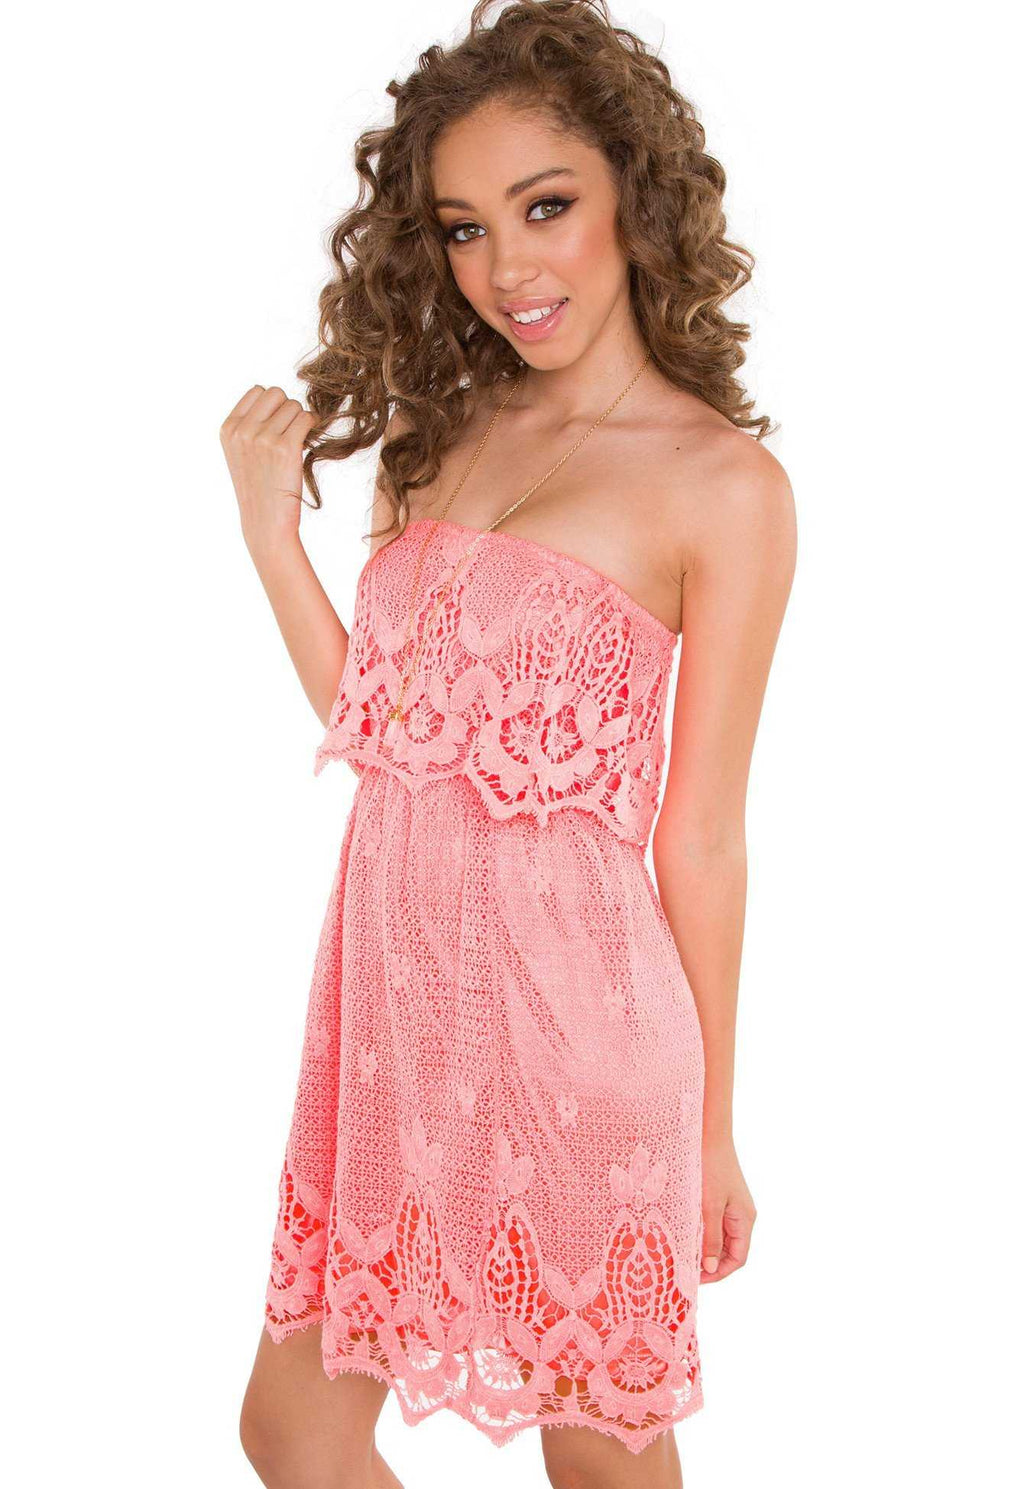 Dresses - Celia Lace Dress - Coral